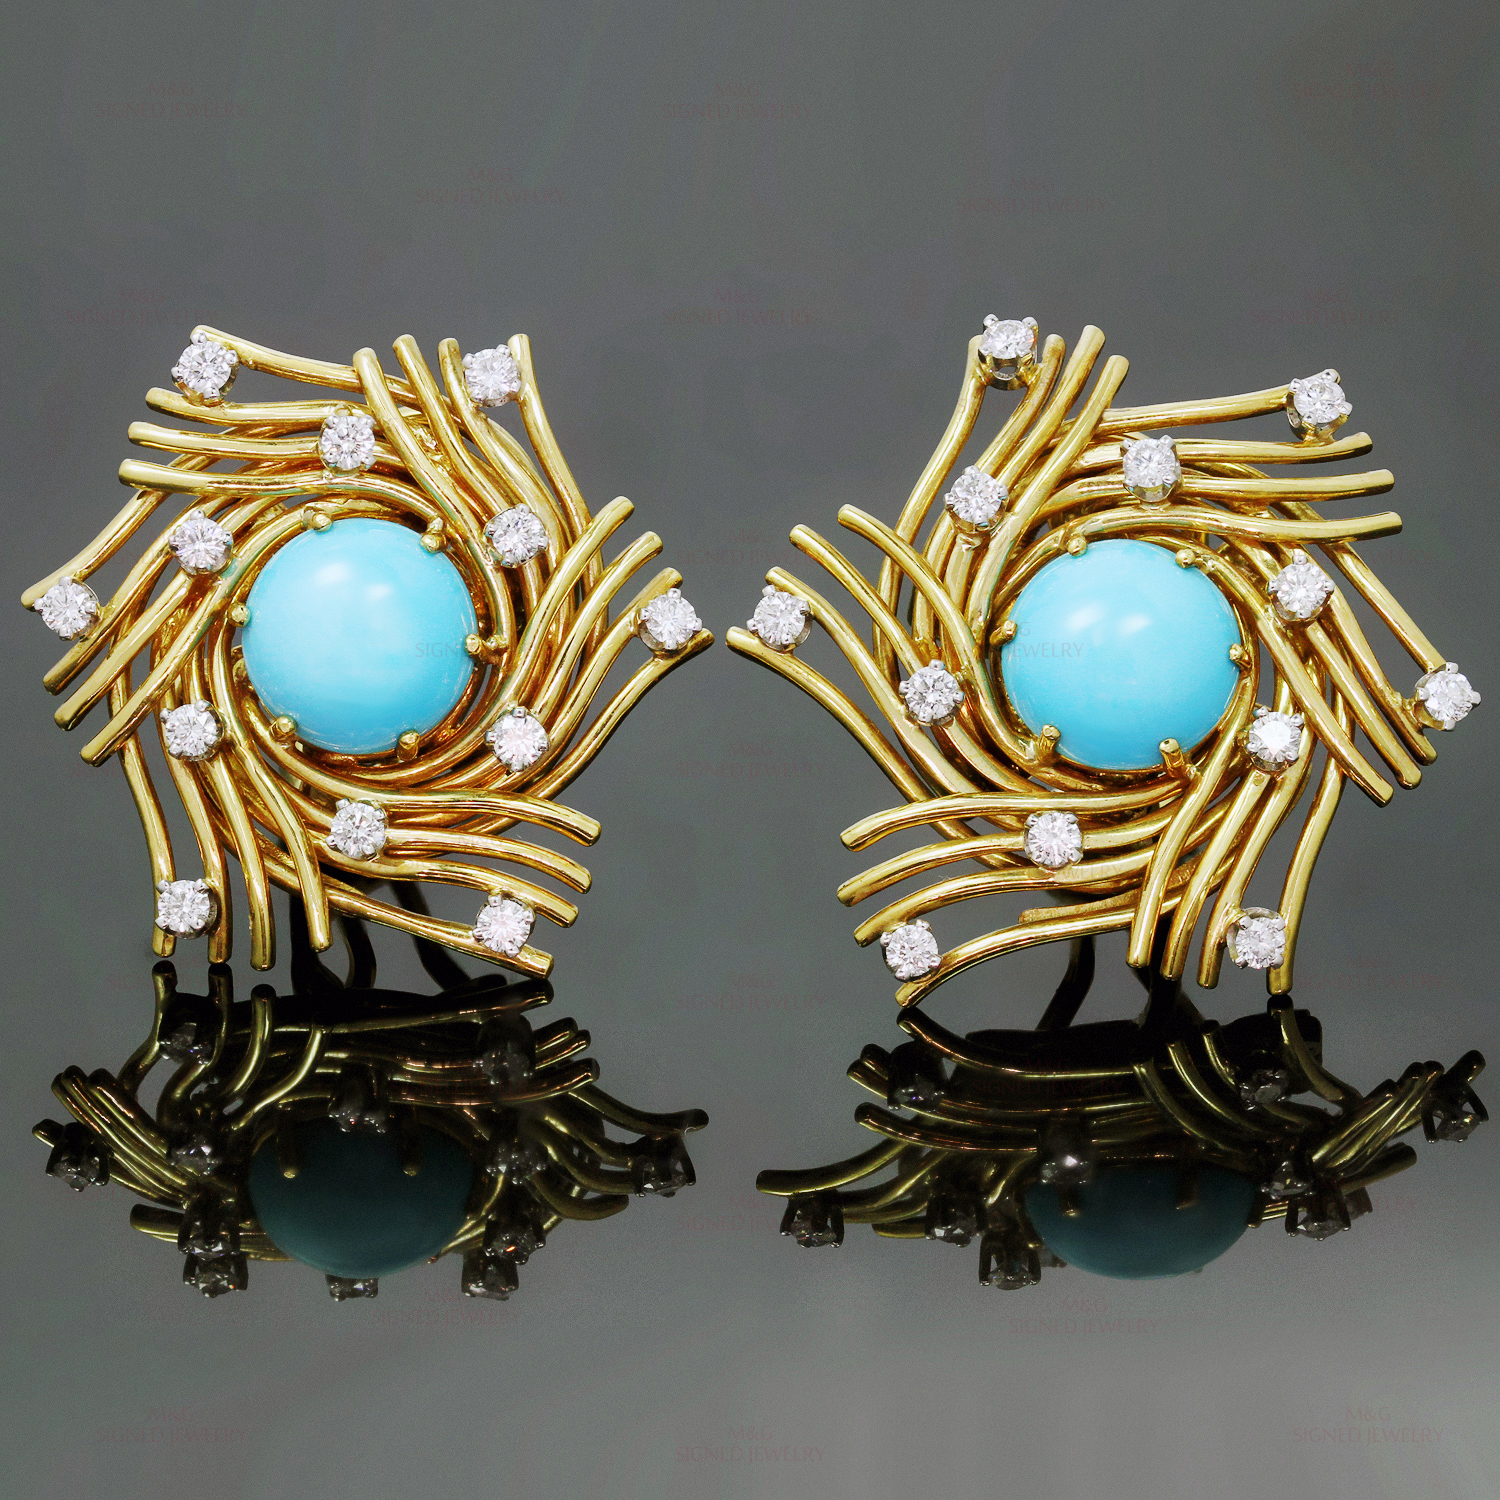 TIFFANY & CO. Diamond Turquoise Platinum 18k Yellow Gold Clip-on Earrings